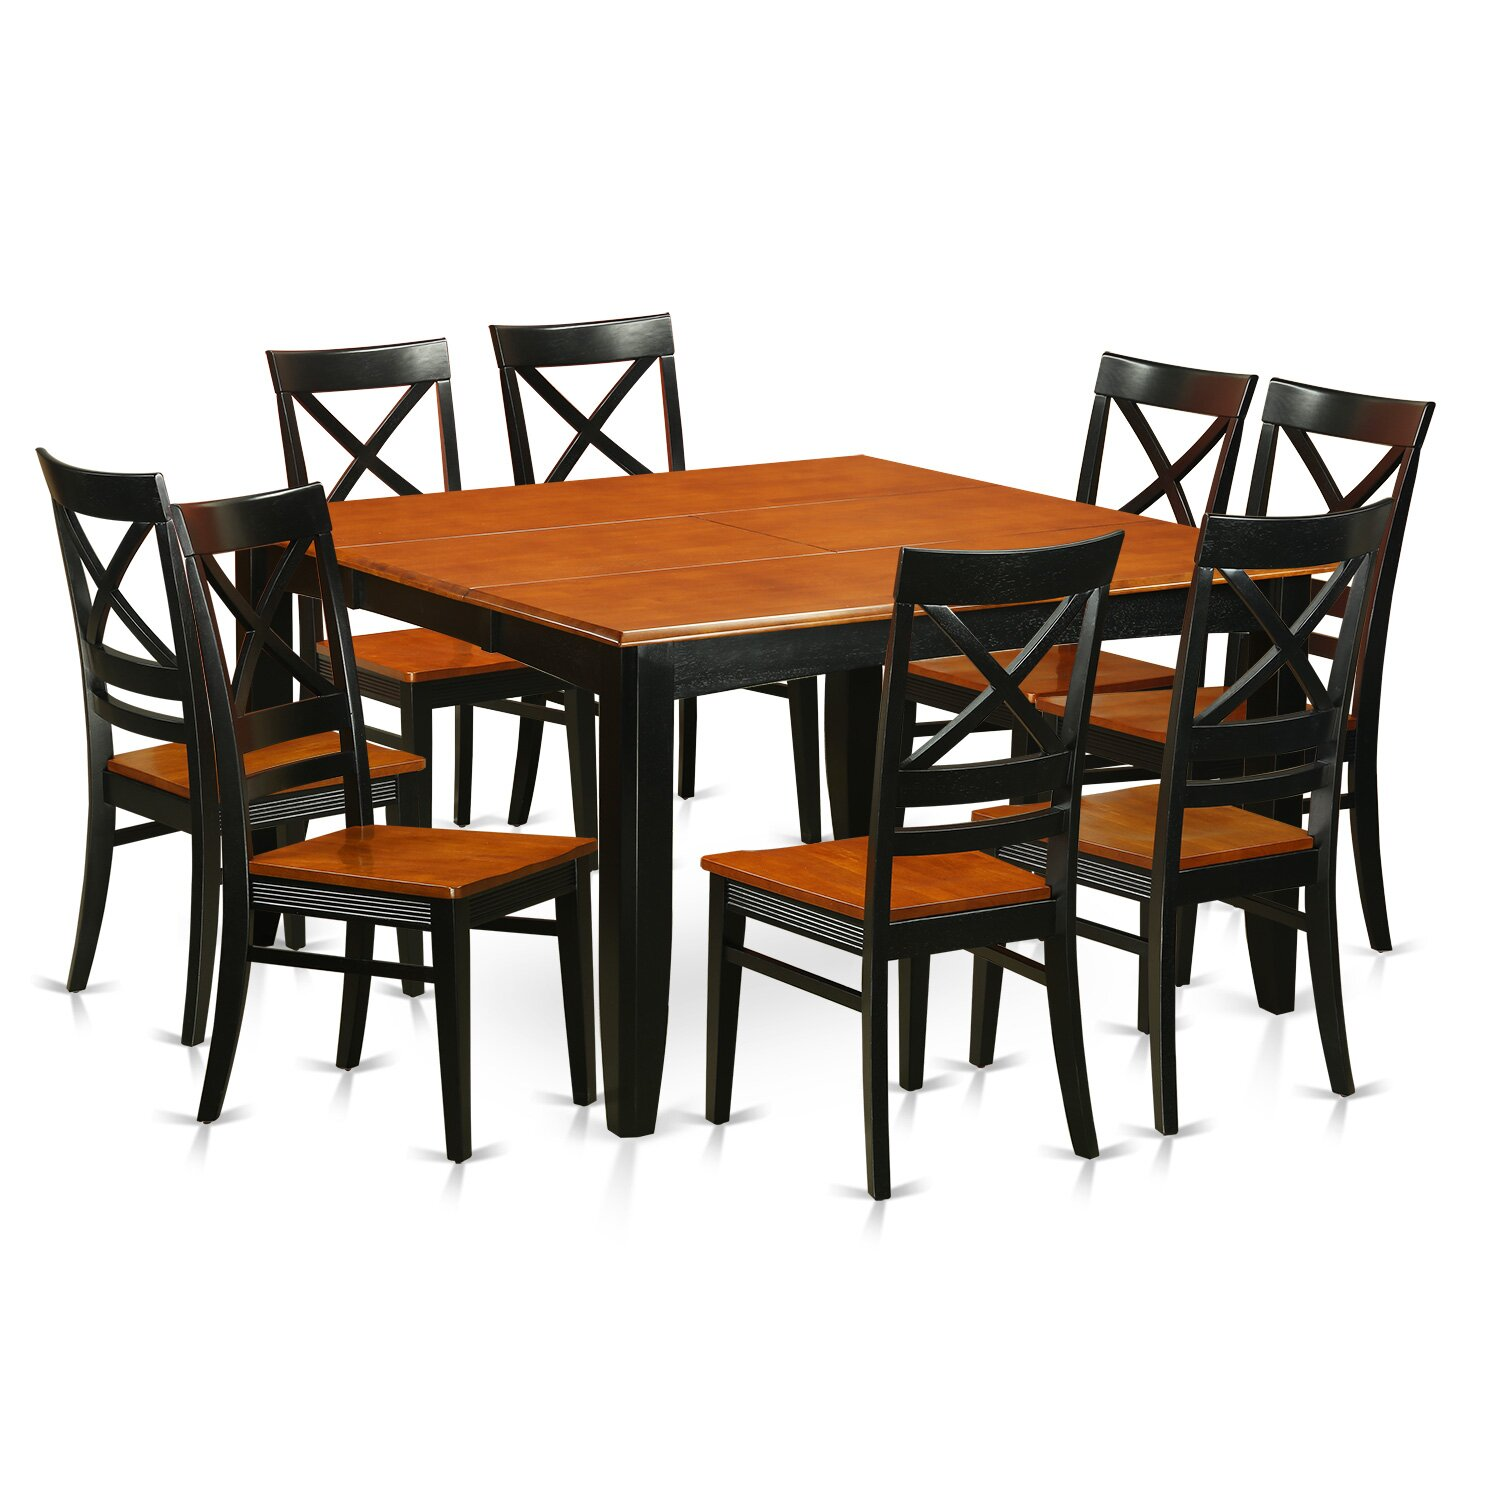 Wooden importers parfait 9 piece dining set for Signoraware organise your kitchen set 8 pieces